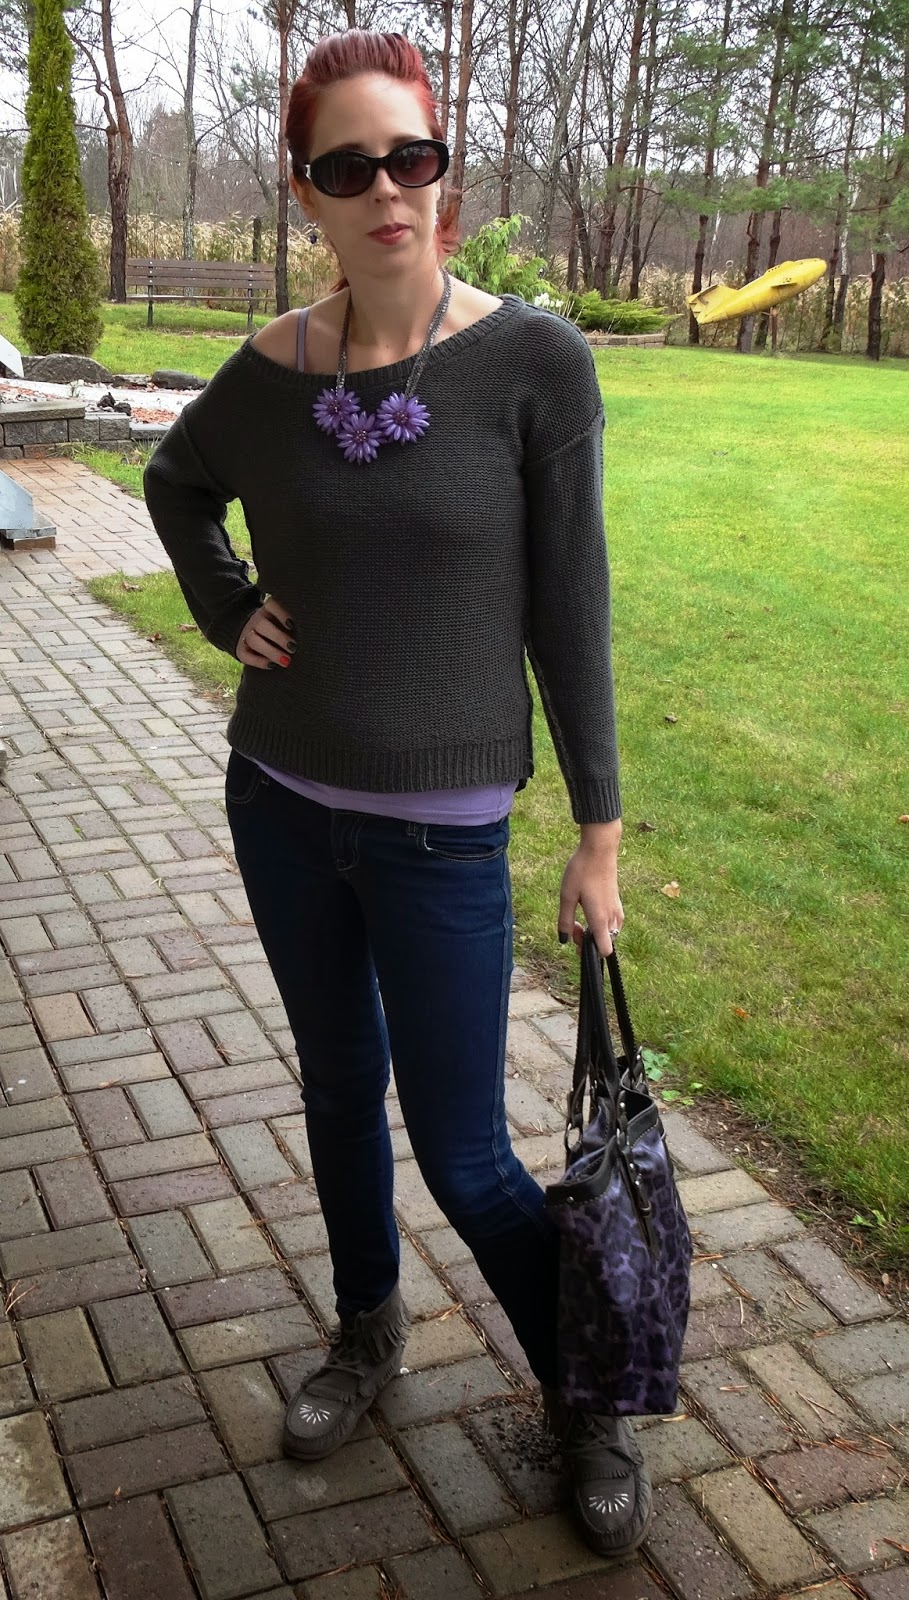 M for Mendocino Ripped Sweater, Suzy Shier Purple Flower Necklace, Bluenotes Skinny Blue Jeans, Zigi Soho Moccasins, Sunglasses from Shoppers Drugmart, Purple David Jones Bag from Sears Canada, Fashion Blogger from Toronto, Melanie.ps, The Purple Scarf Winter Casual Look Tank top from Forever 21